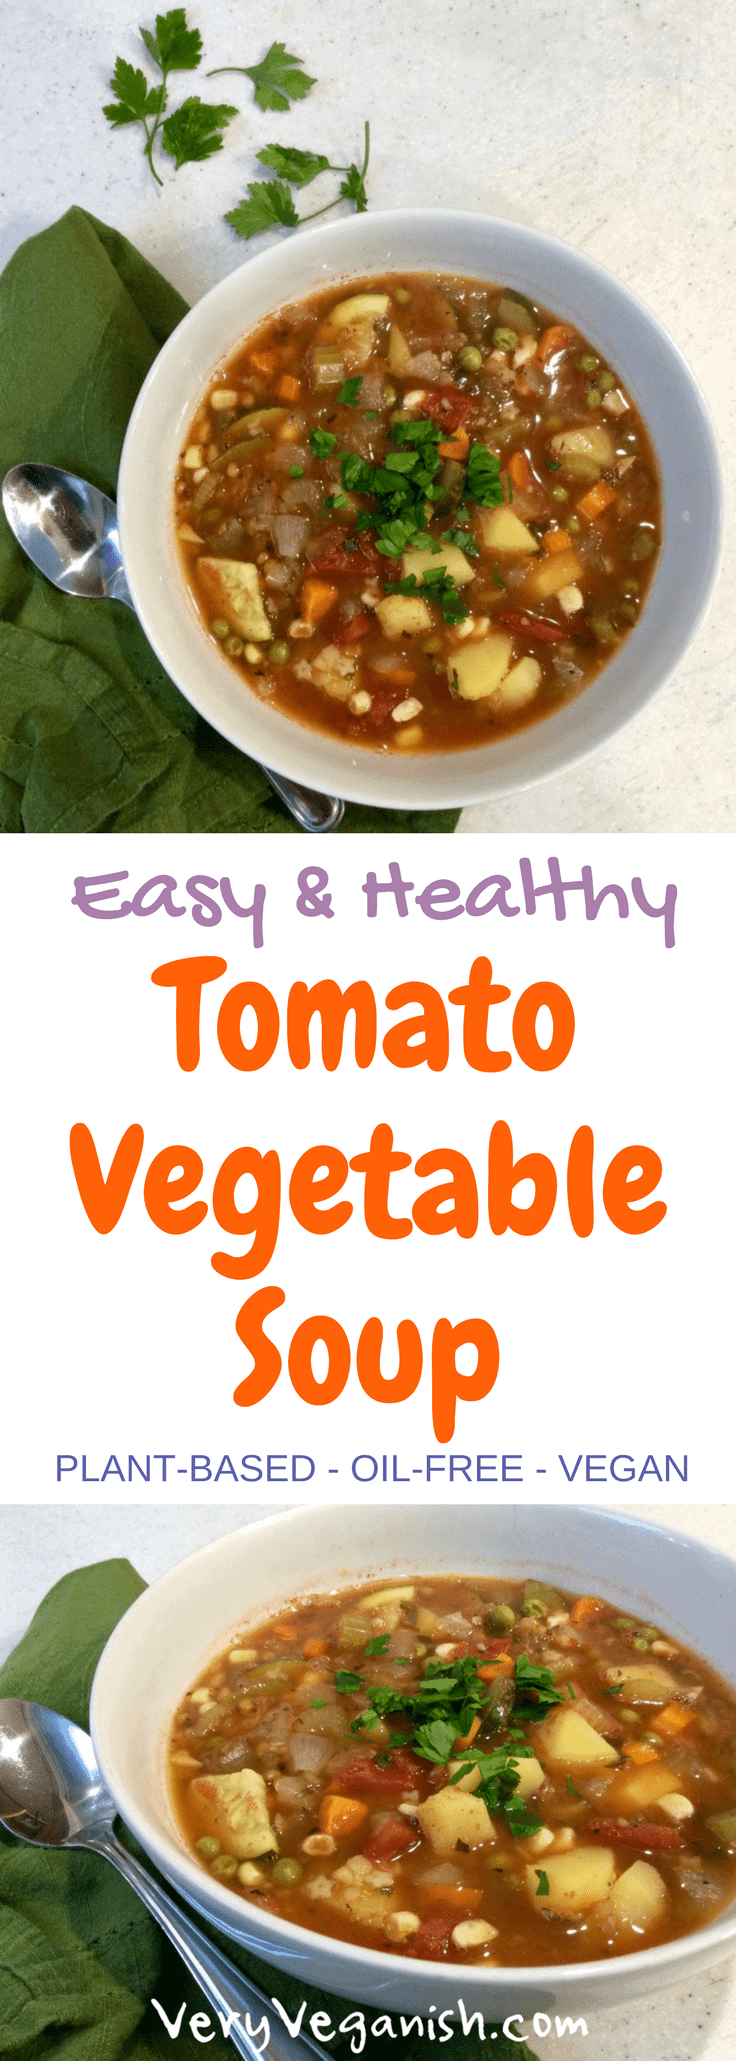 Easy Tomato Vegetable Soup for the Soul by Very Veganish